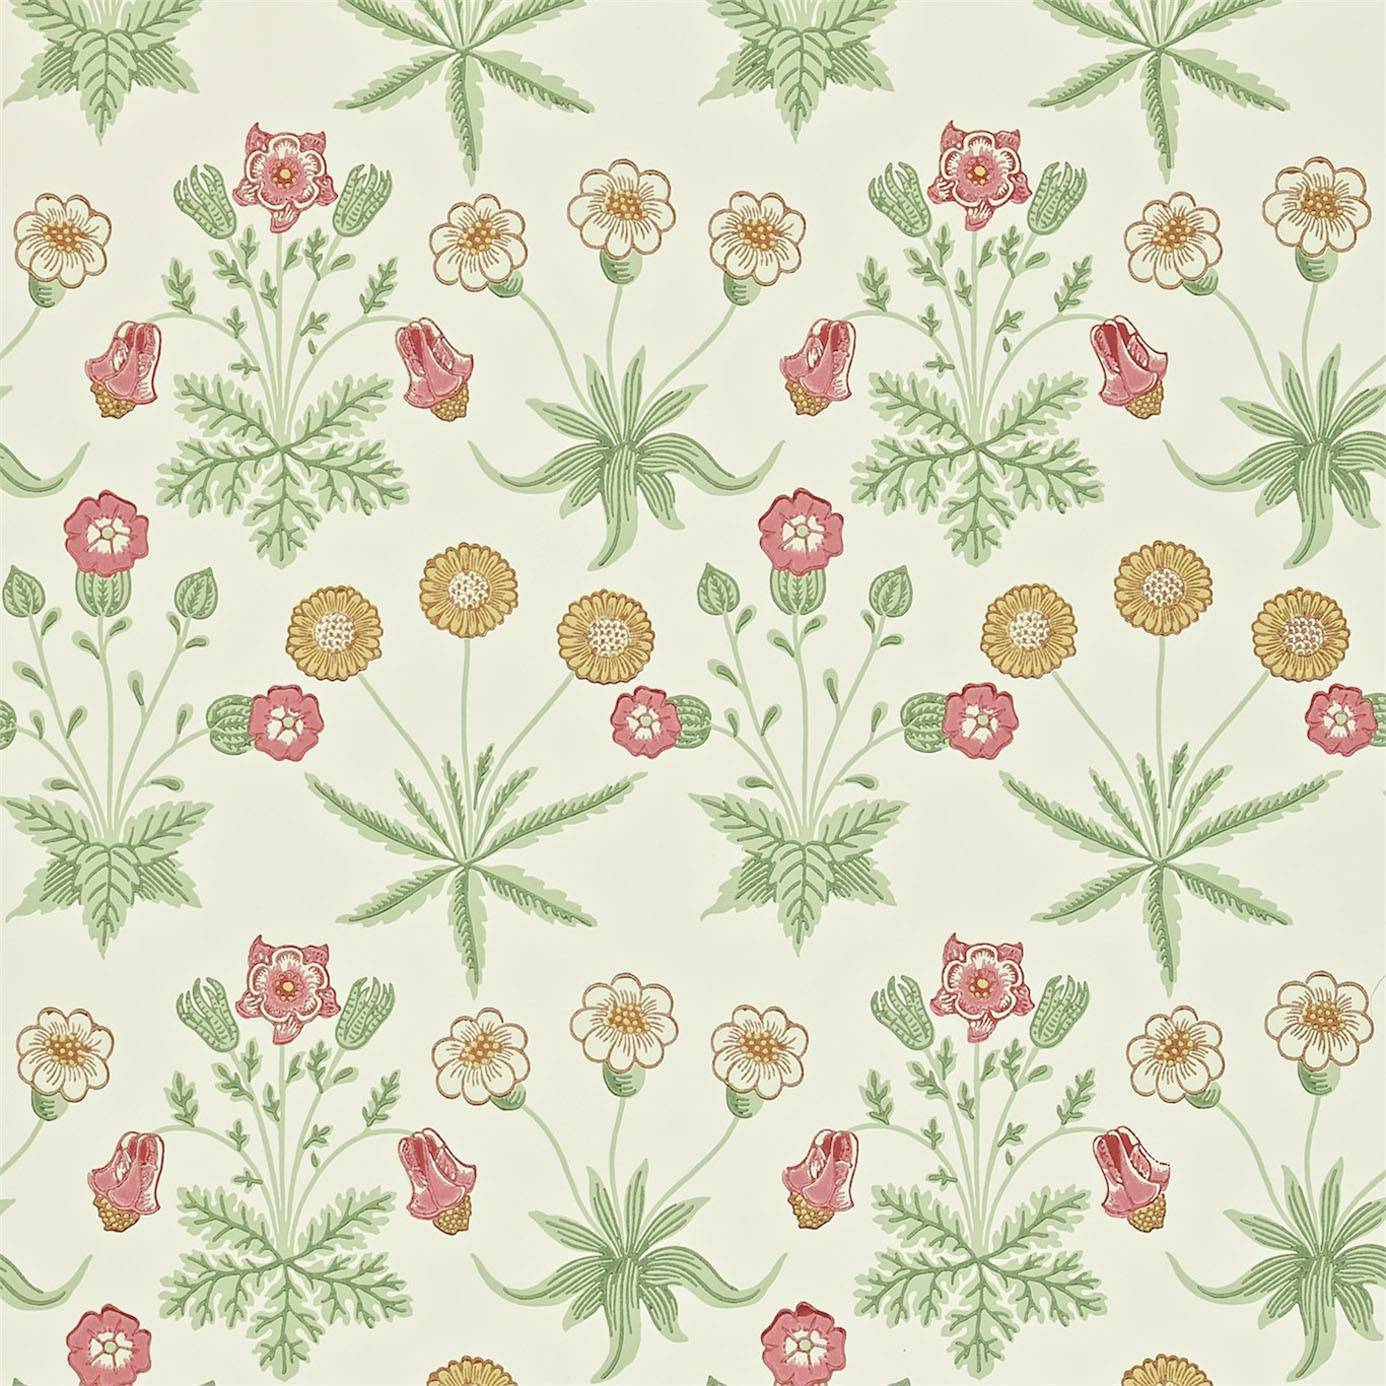 Wallpapers William Morris Co Archive 2 Wallpapers Daisy Wallpaper 1386x1386